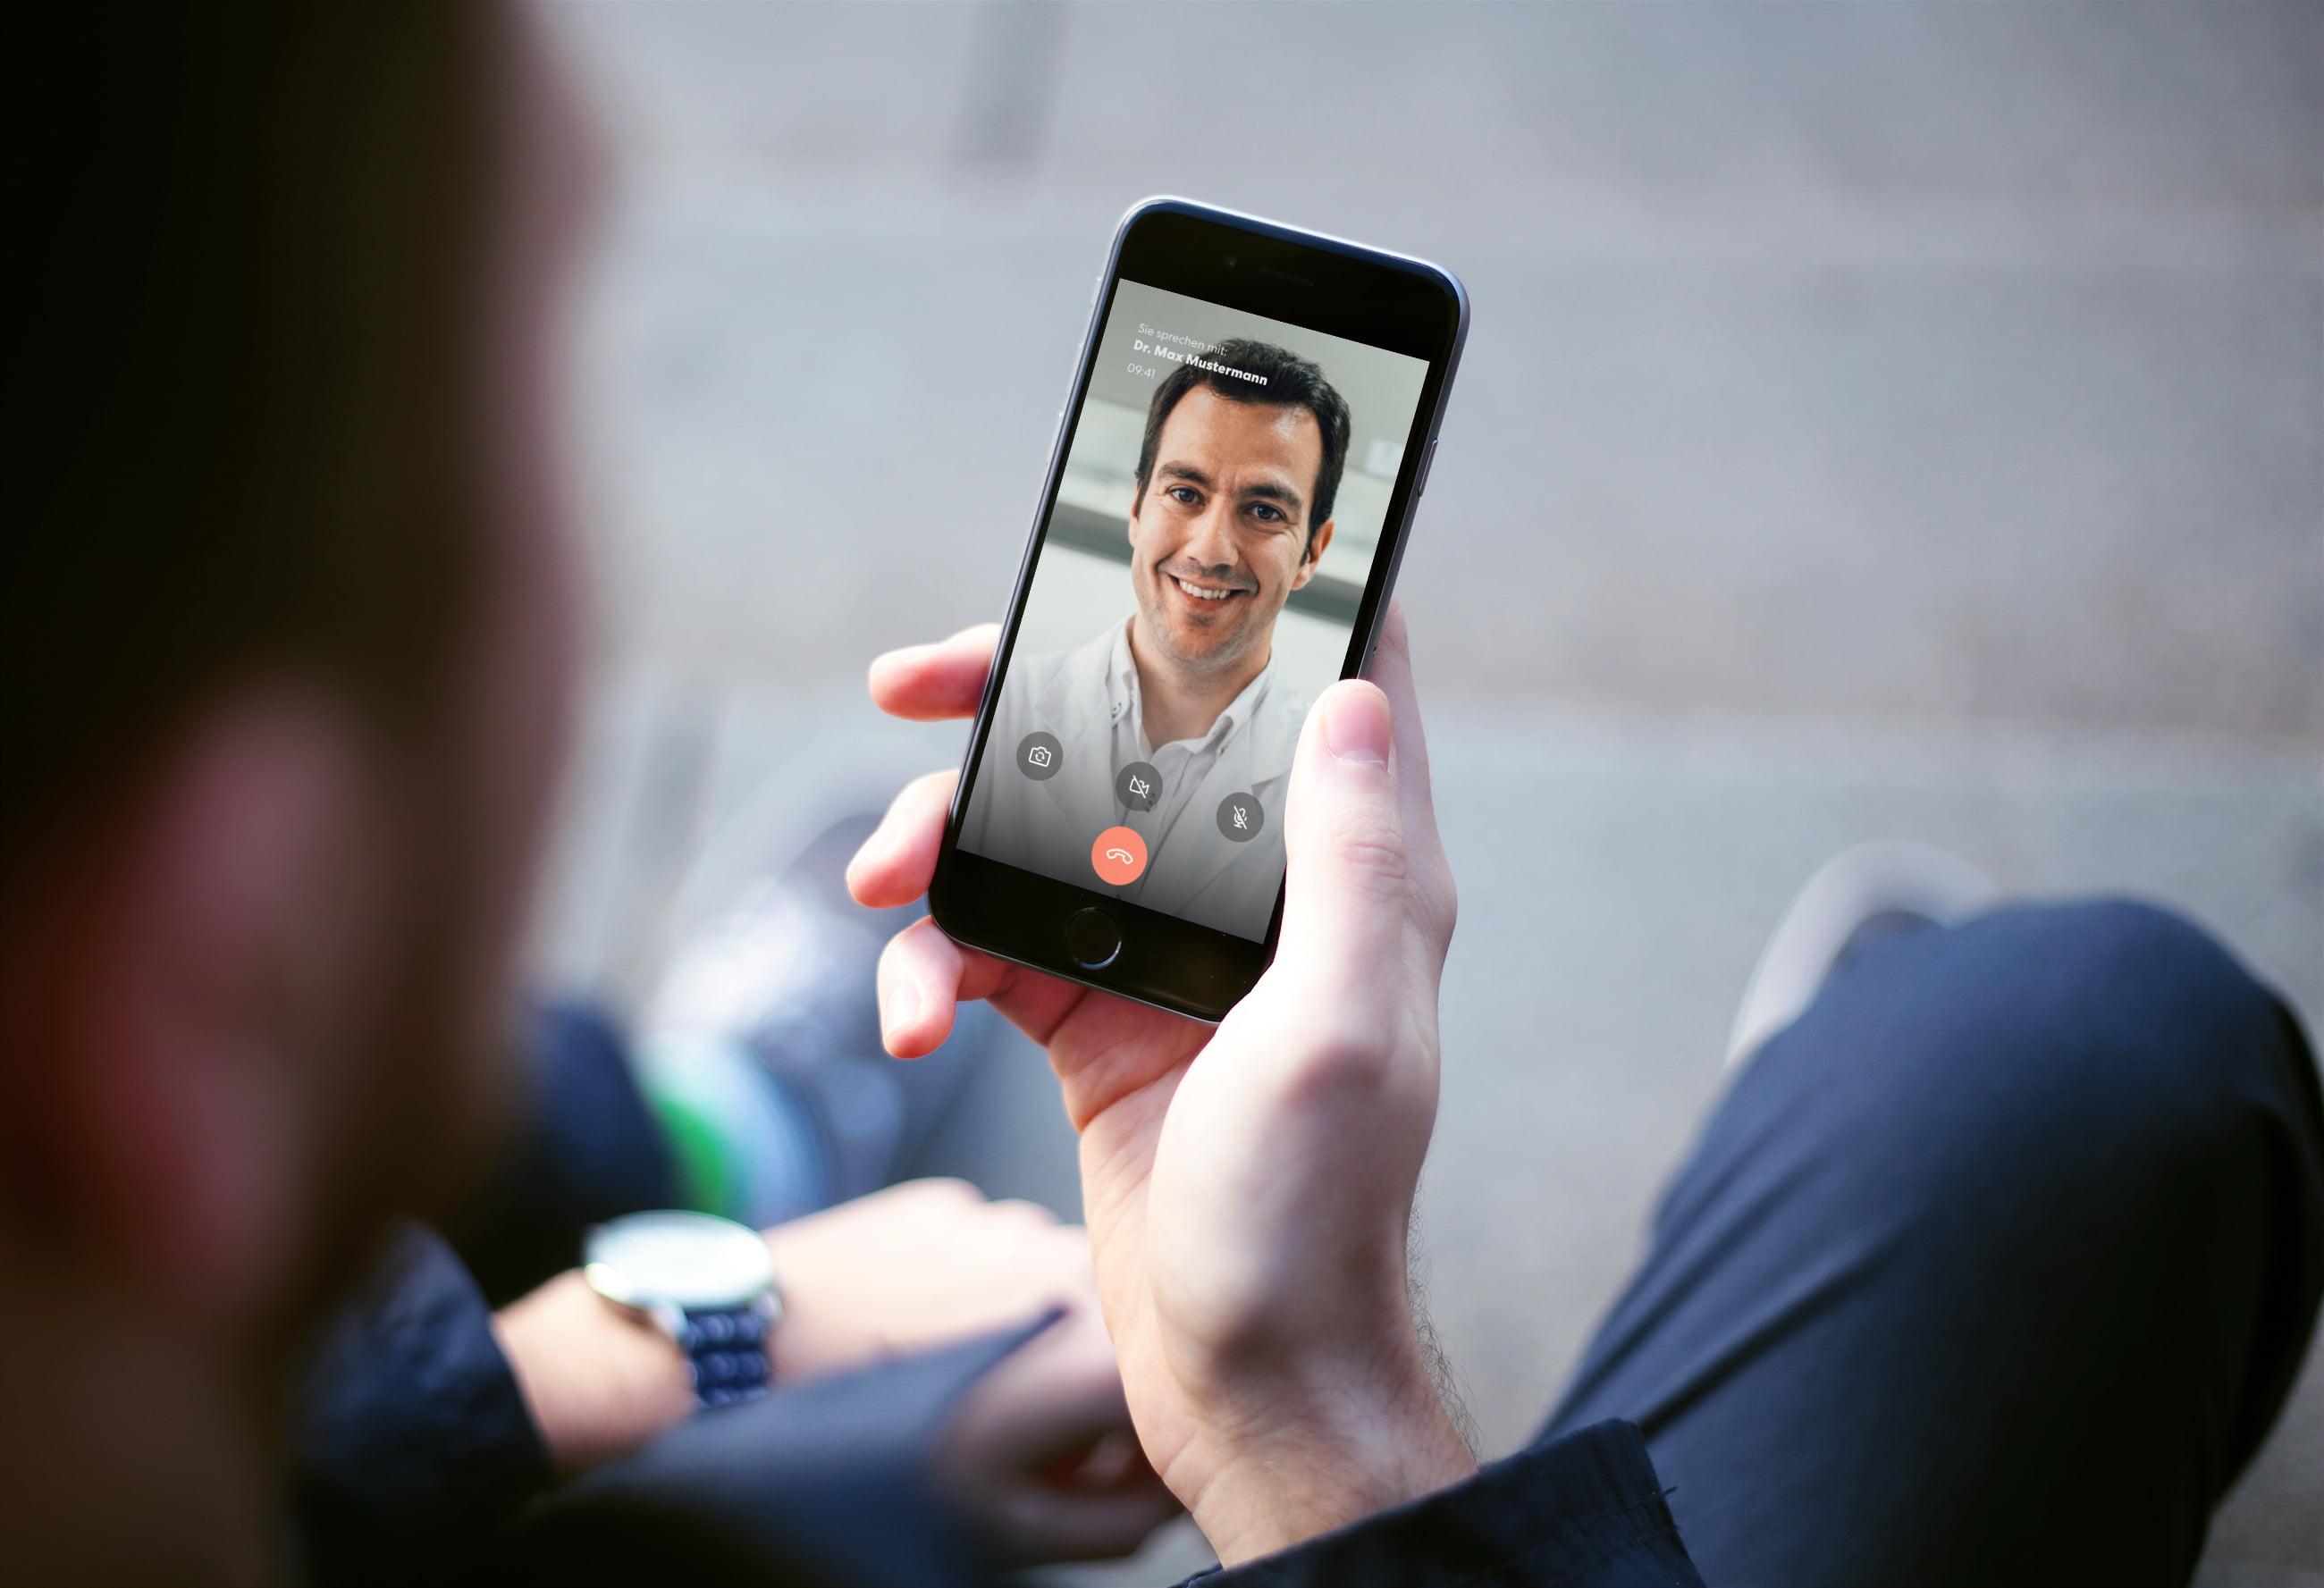 Video doctor consultation with a smartphone